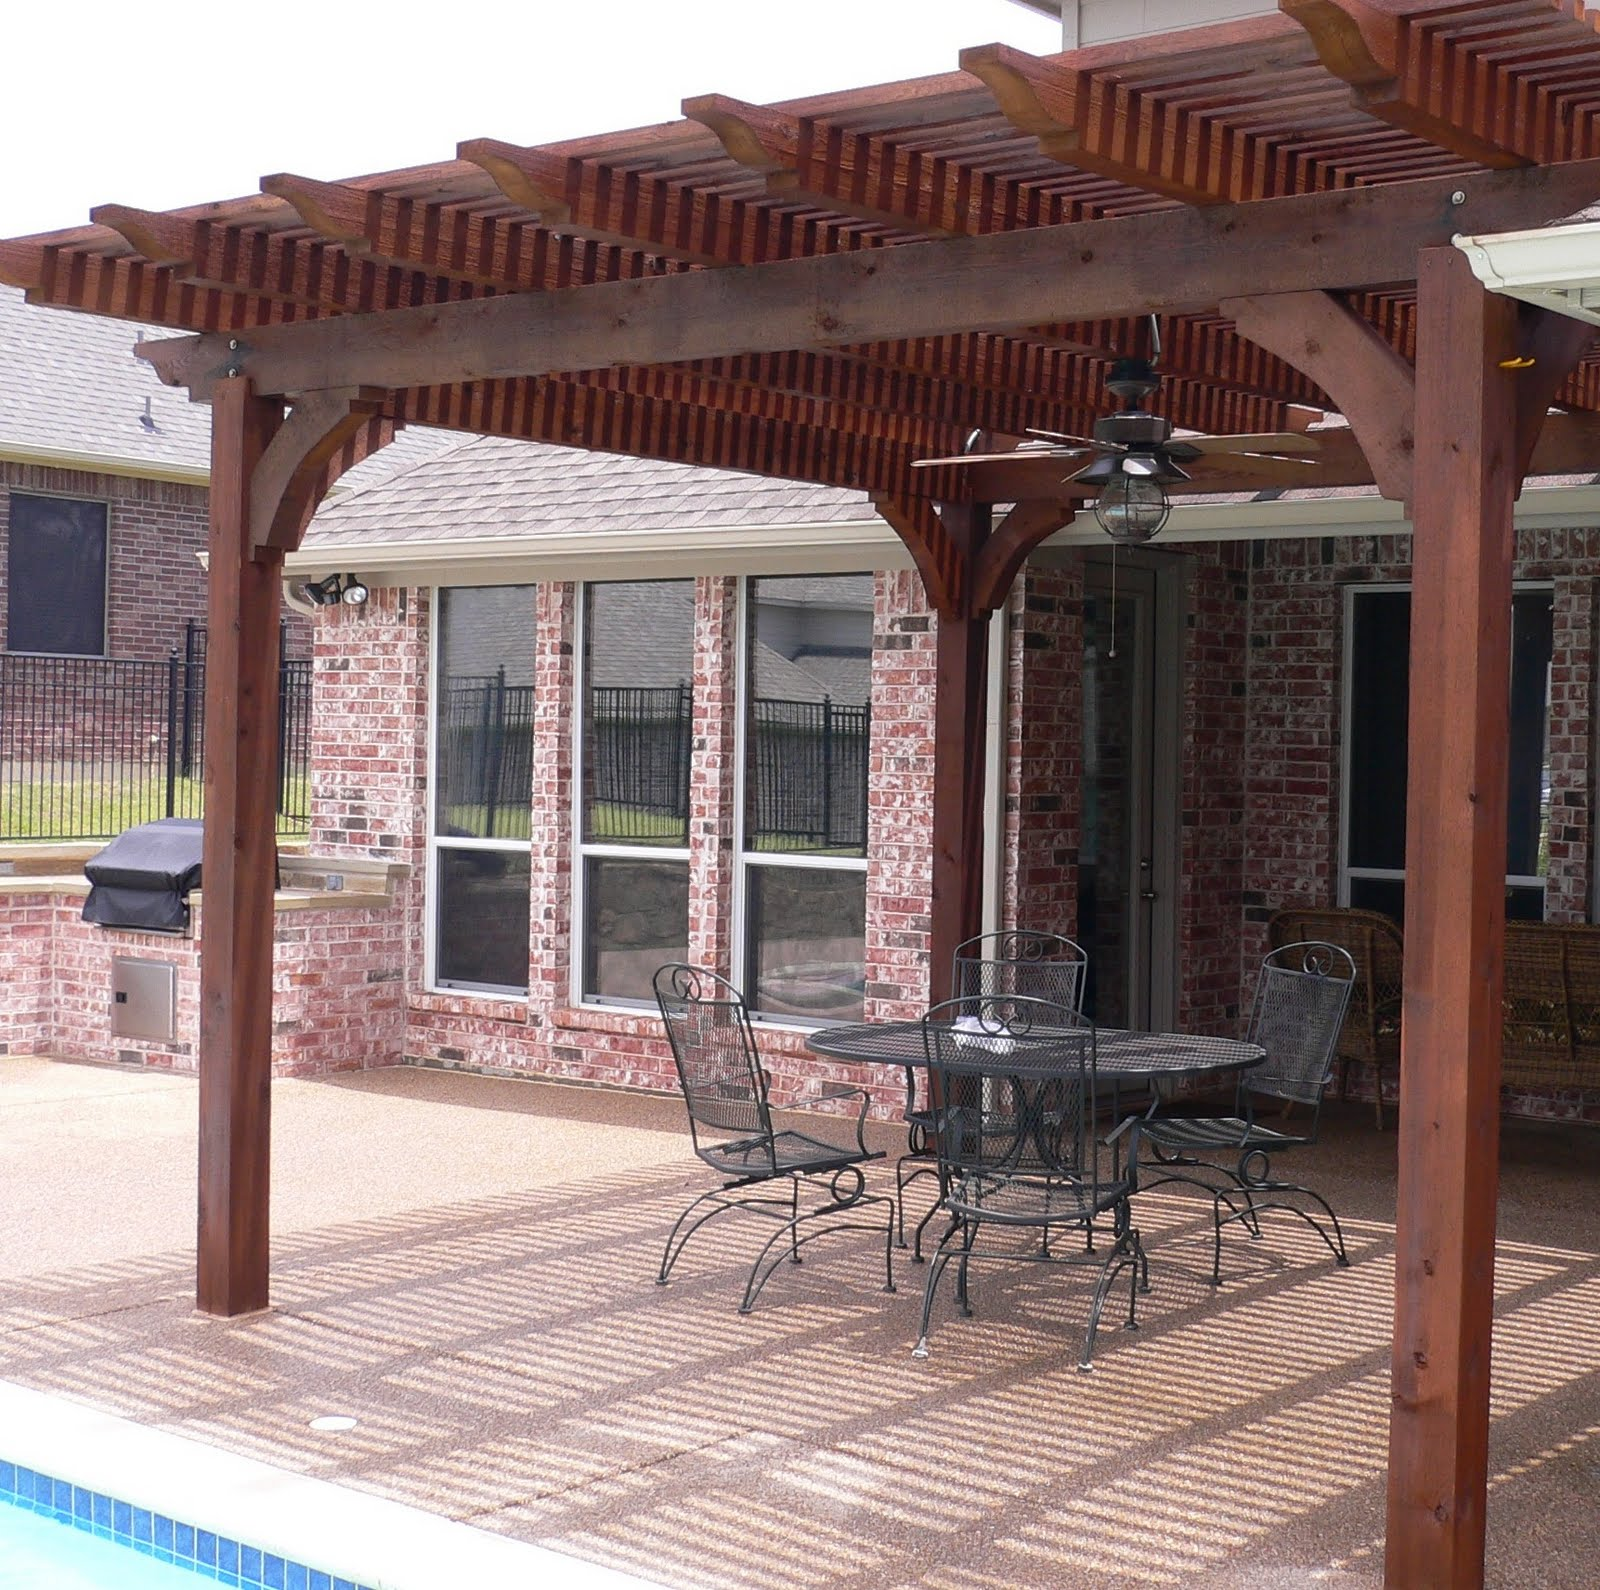 Wooden Patio Covers: Give High Aesthetic Value and Best ... on Backyard Patio Enclosure Ideas  id=69747